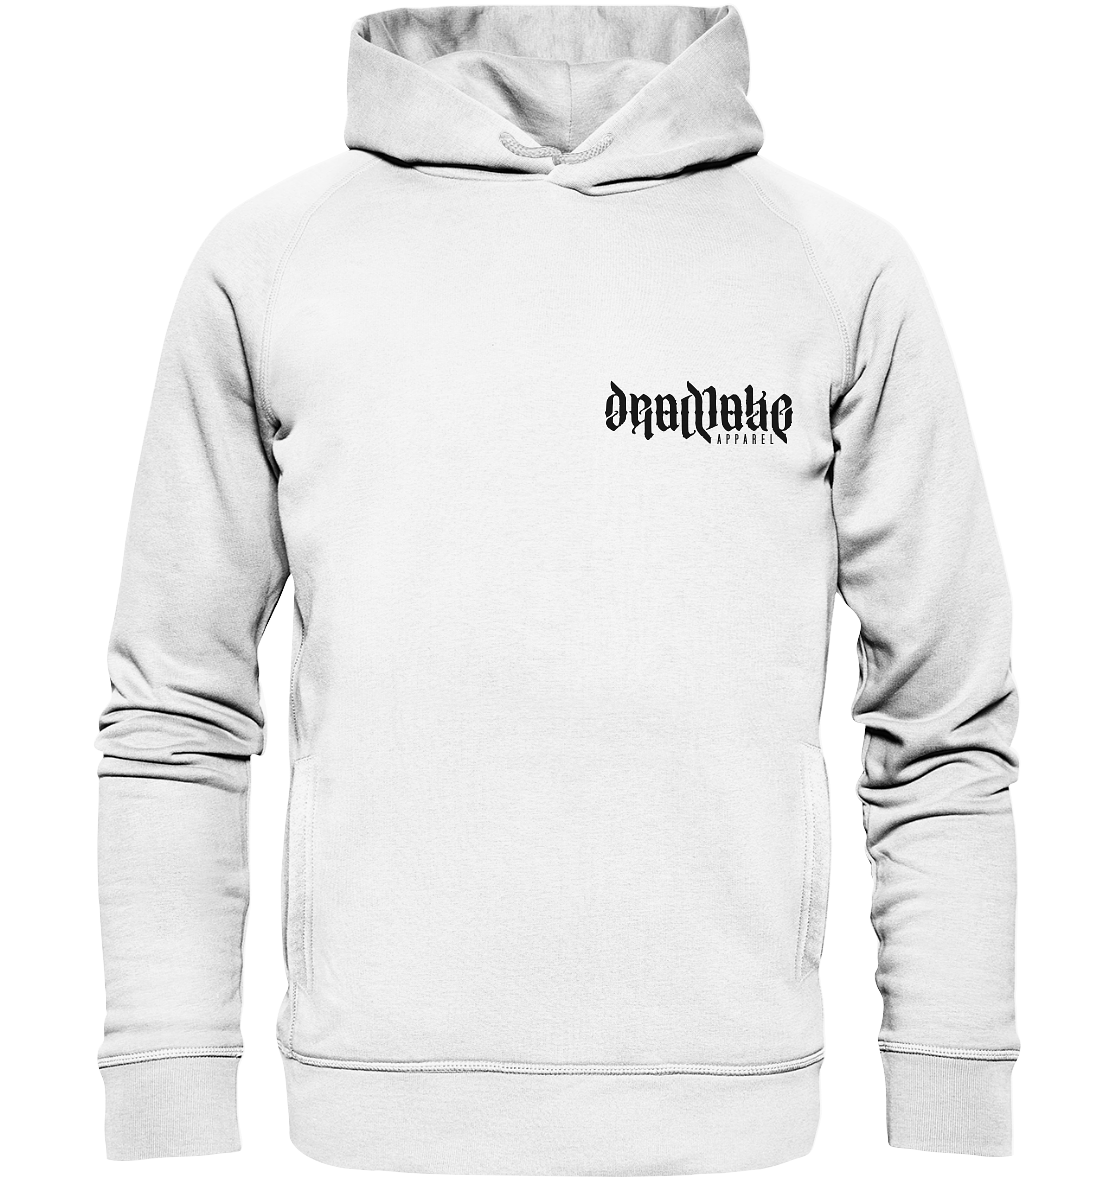 front-organic-fashion-hoodie-f8f8f8-1116x-1.png